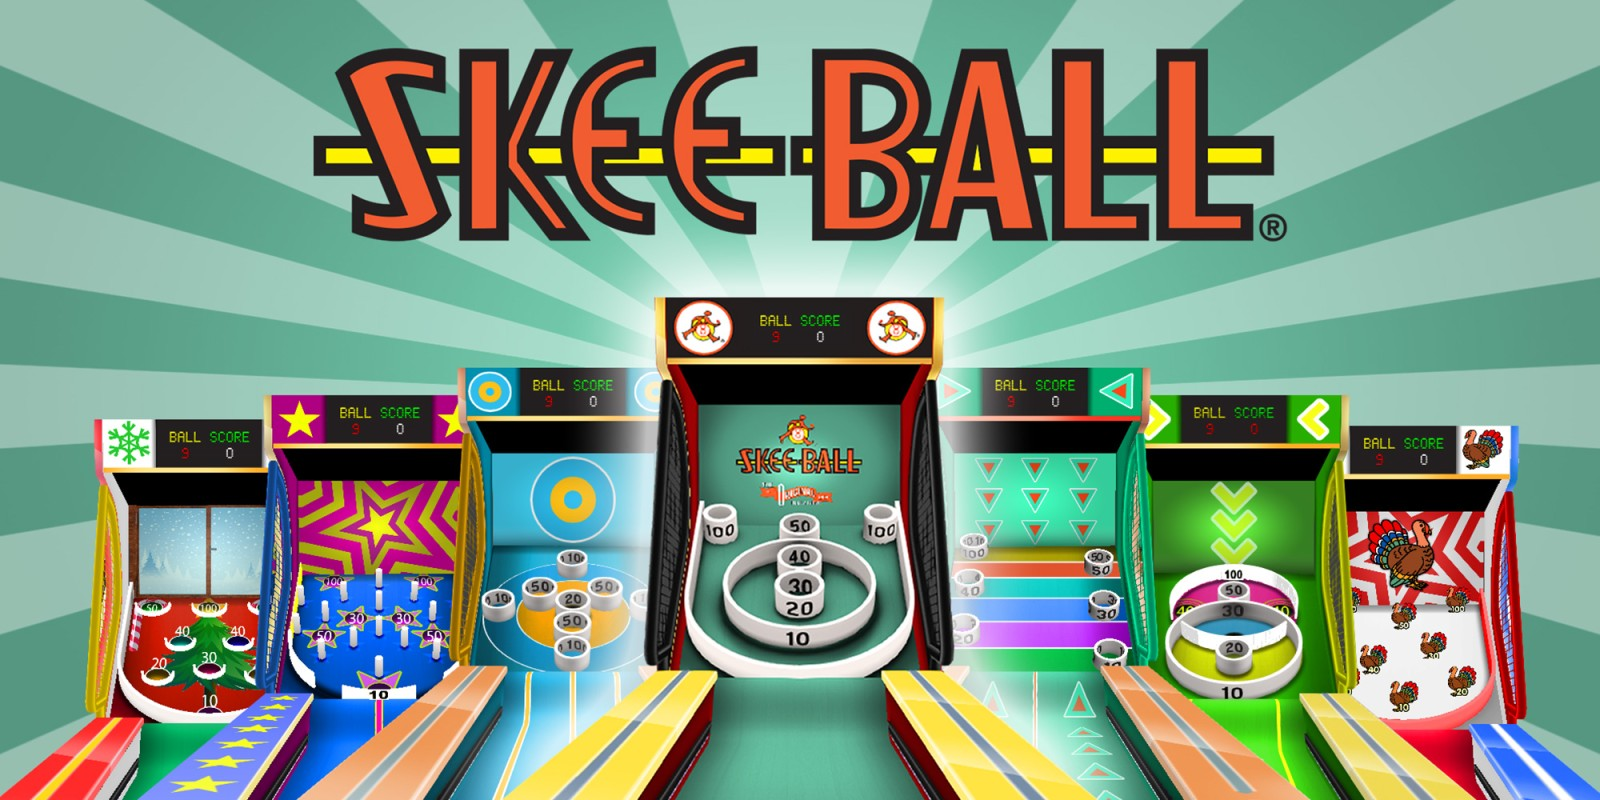 Skee-Ball Nintendo Switch Review